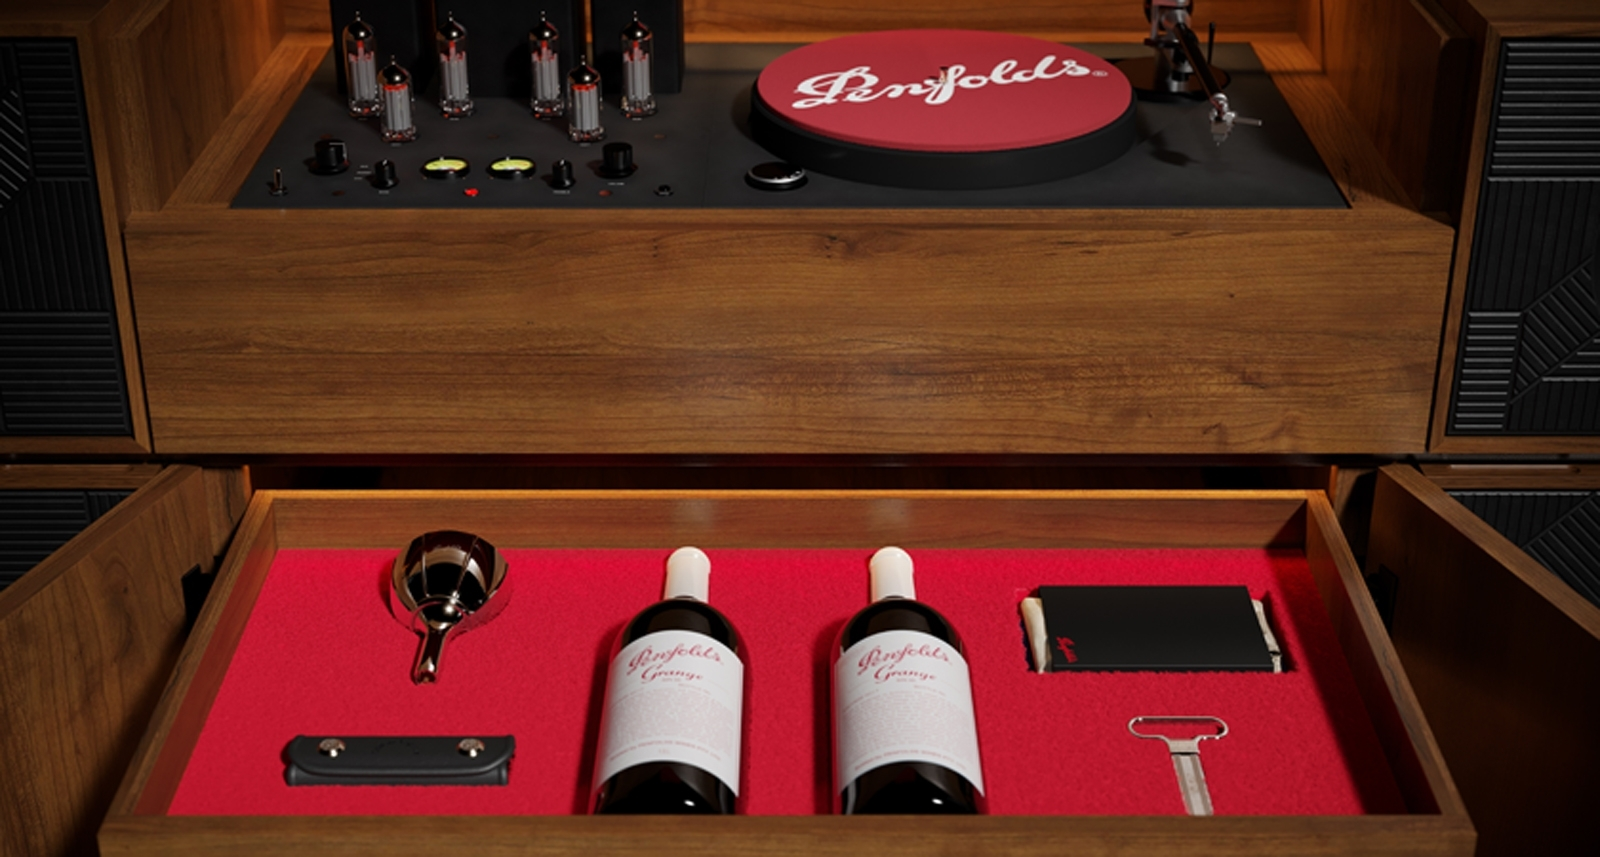 Penfolds Record Player Console with Amplifier and Wine